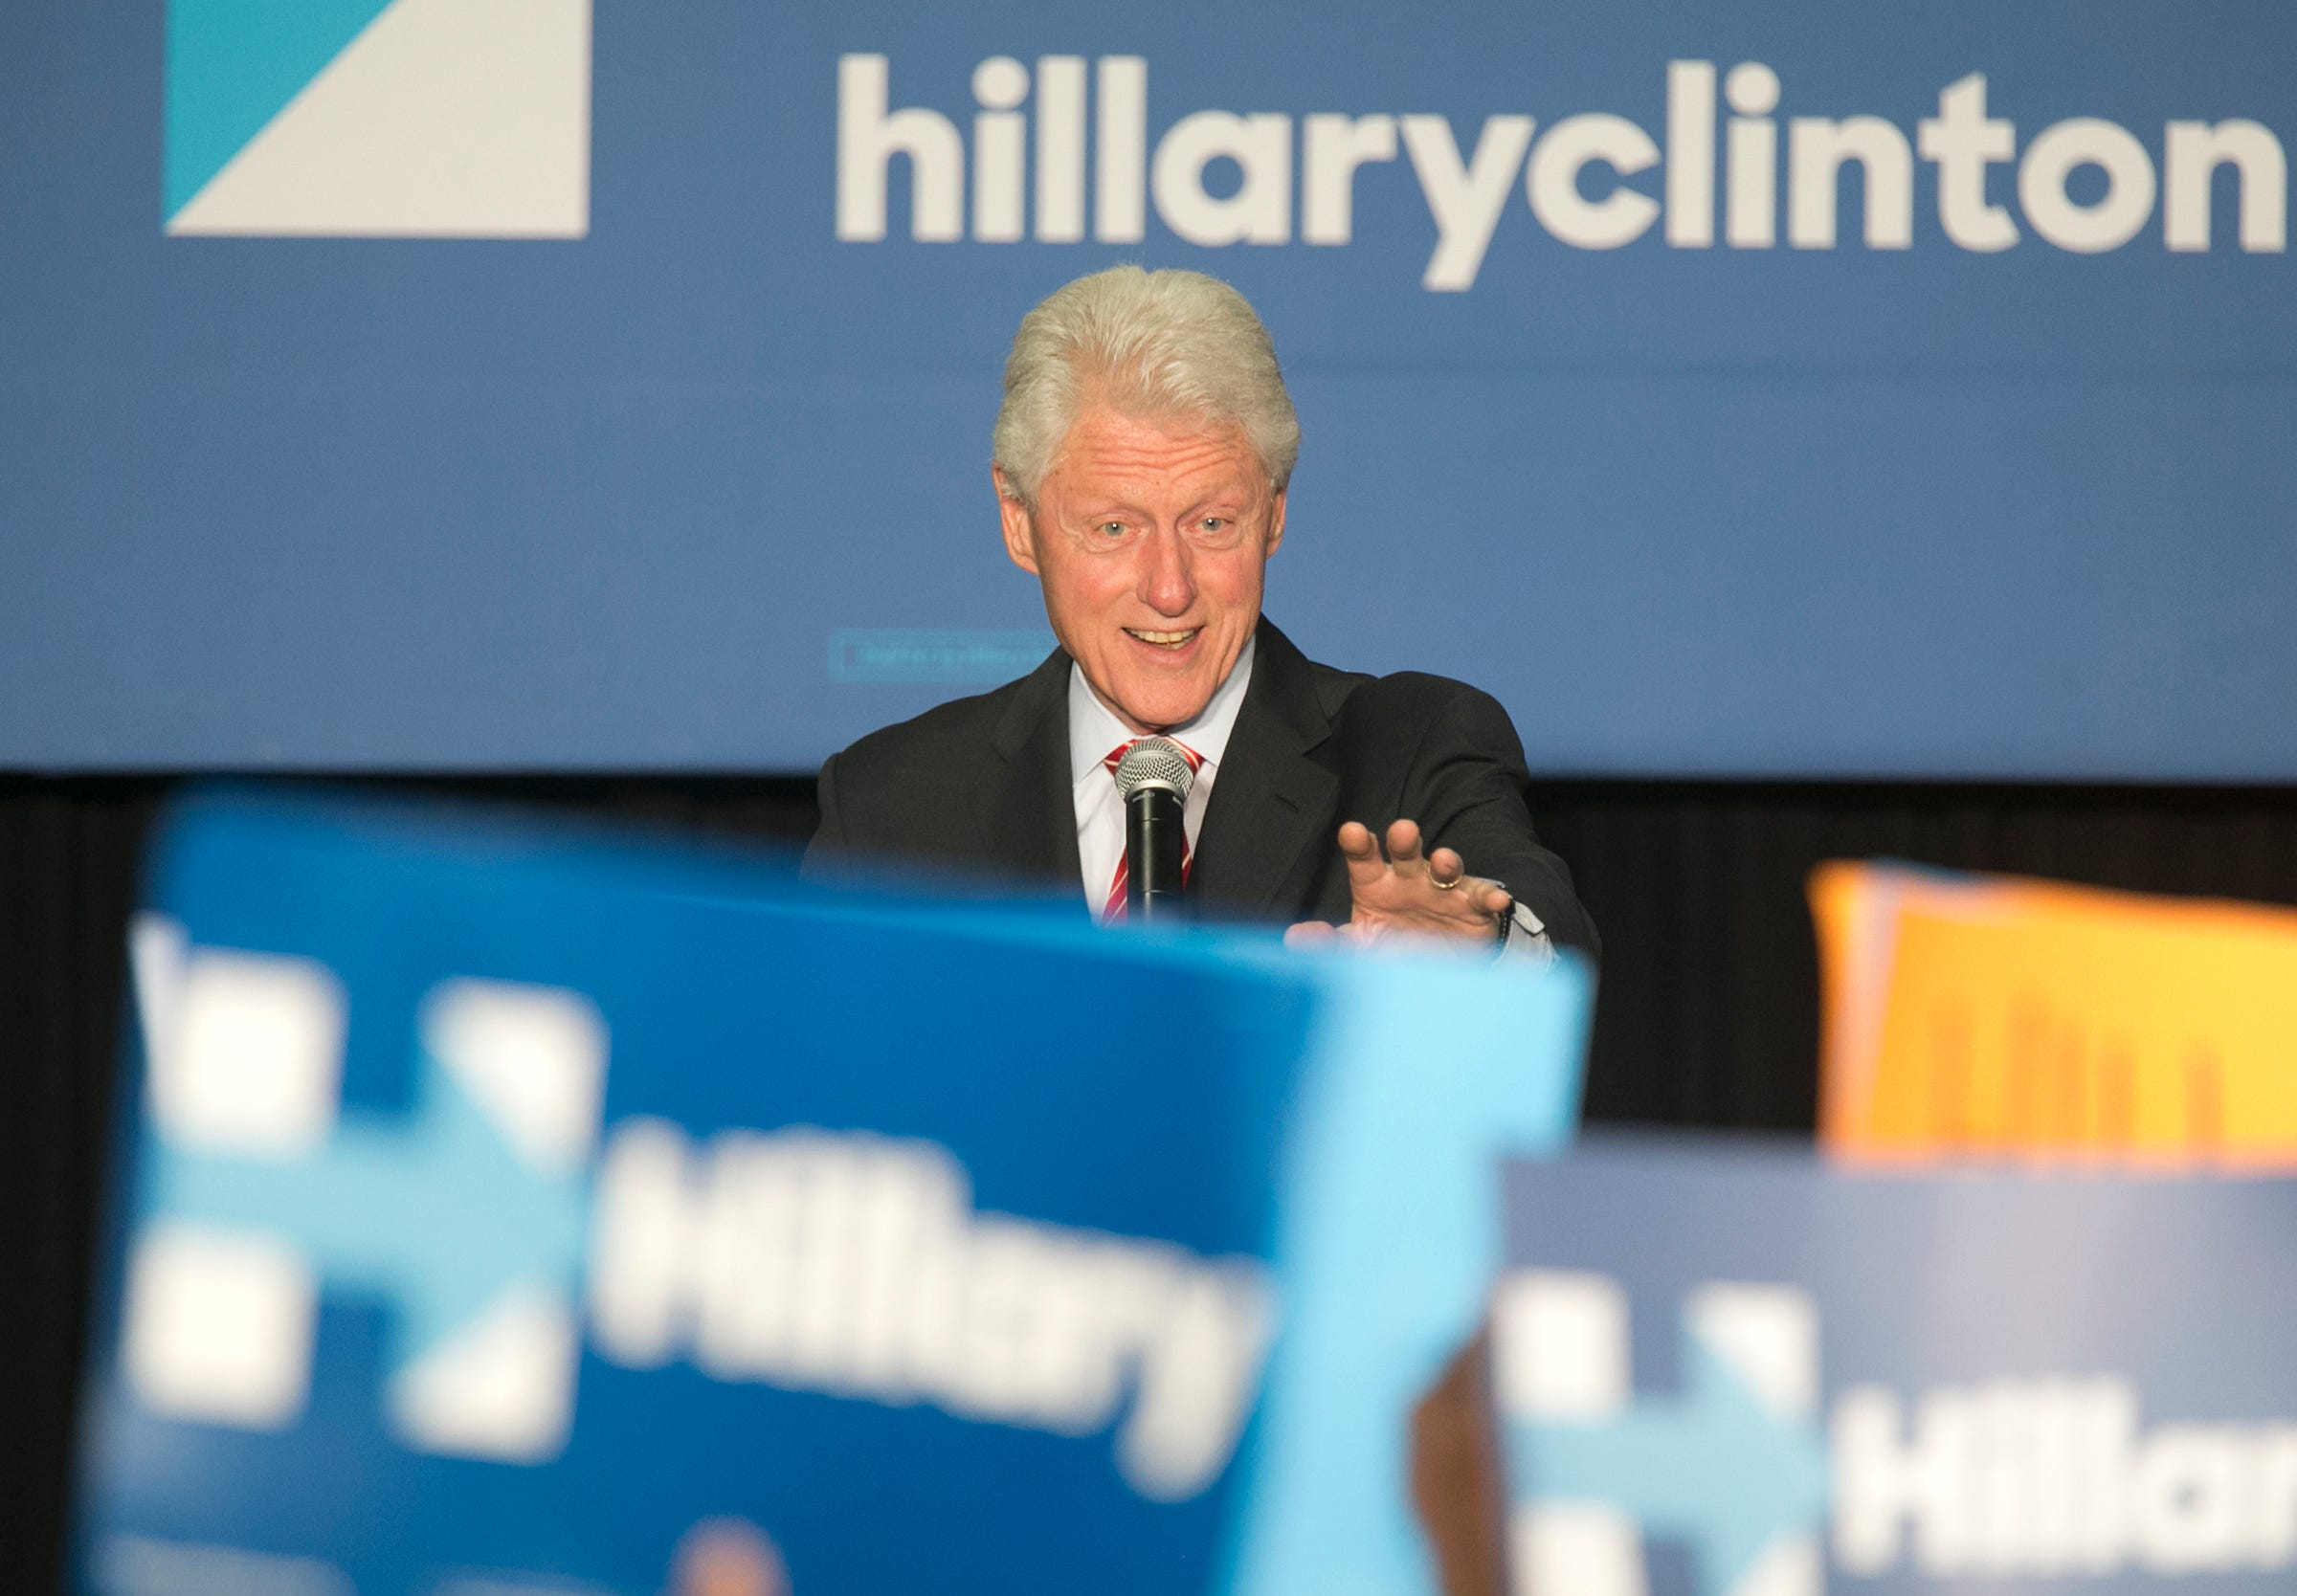 FACT CHECK: Bill Clinton in the Nude